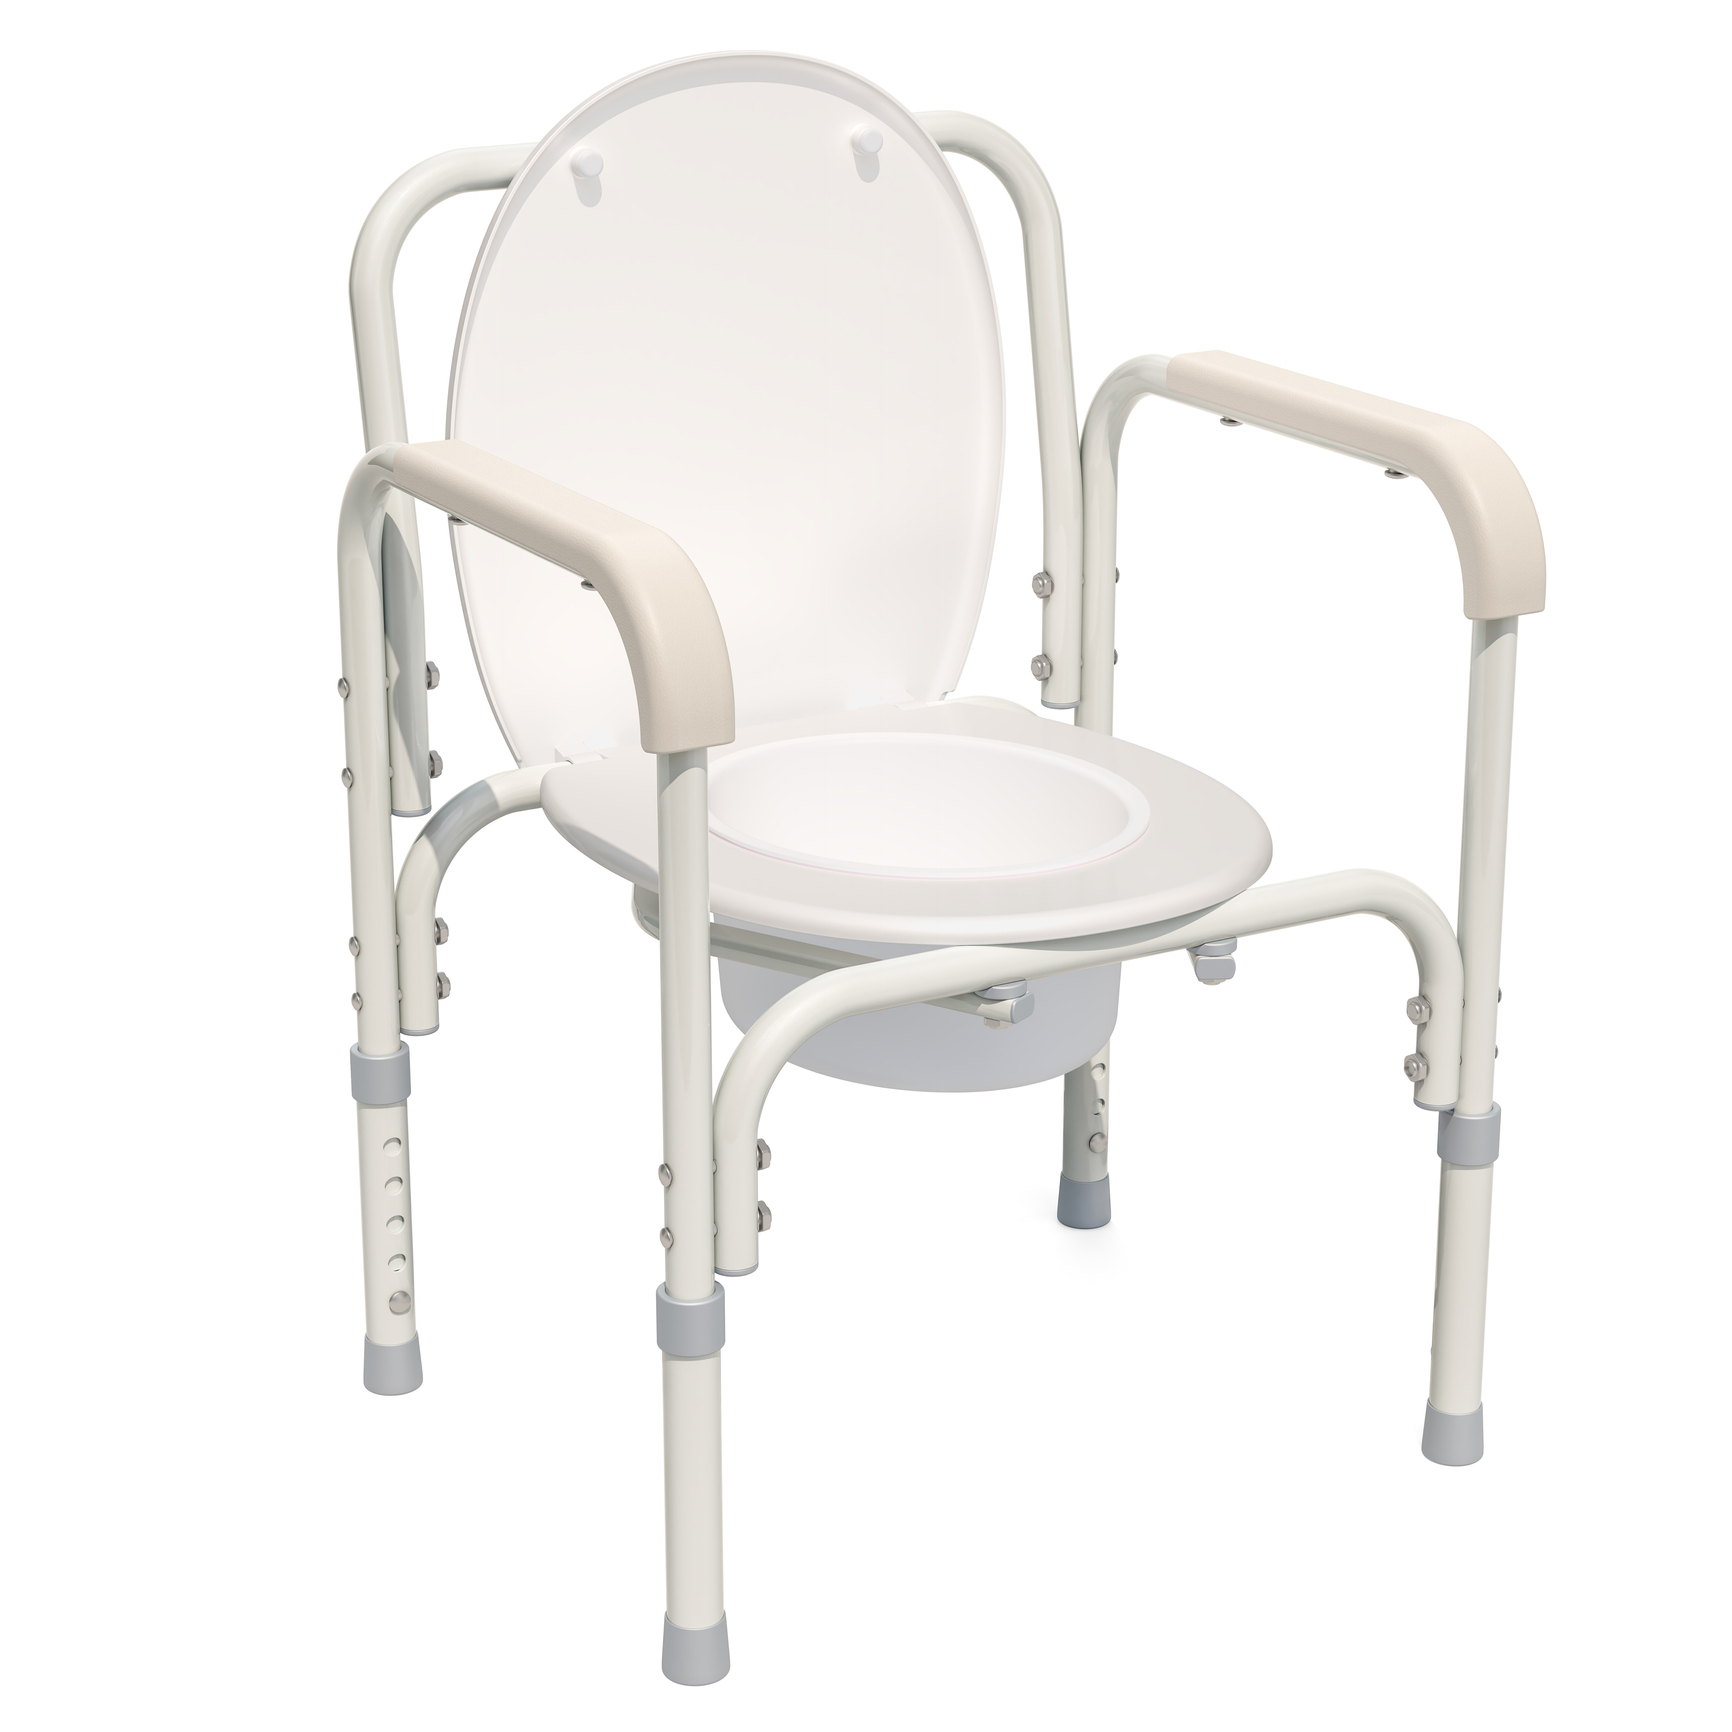 Handicap portable toilet chair